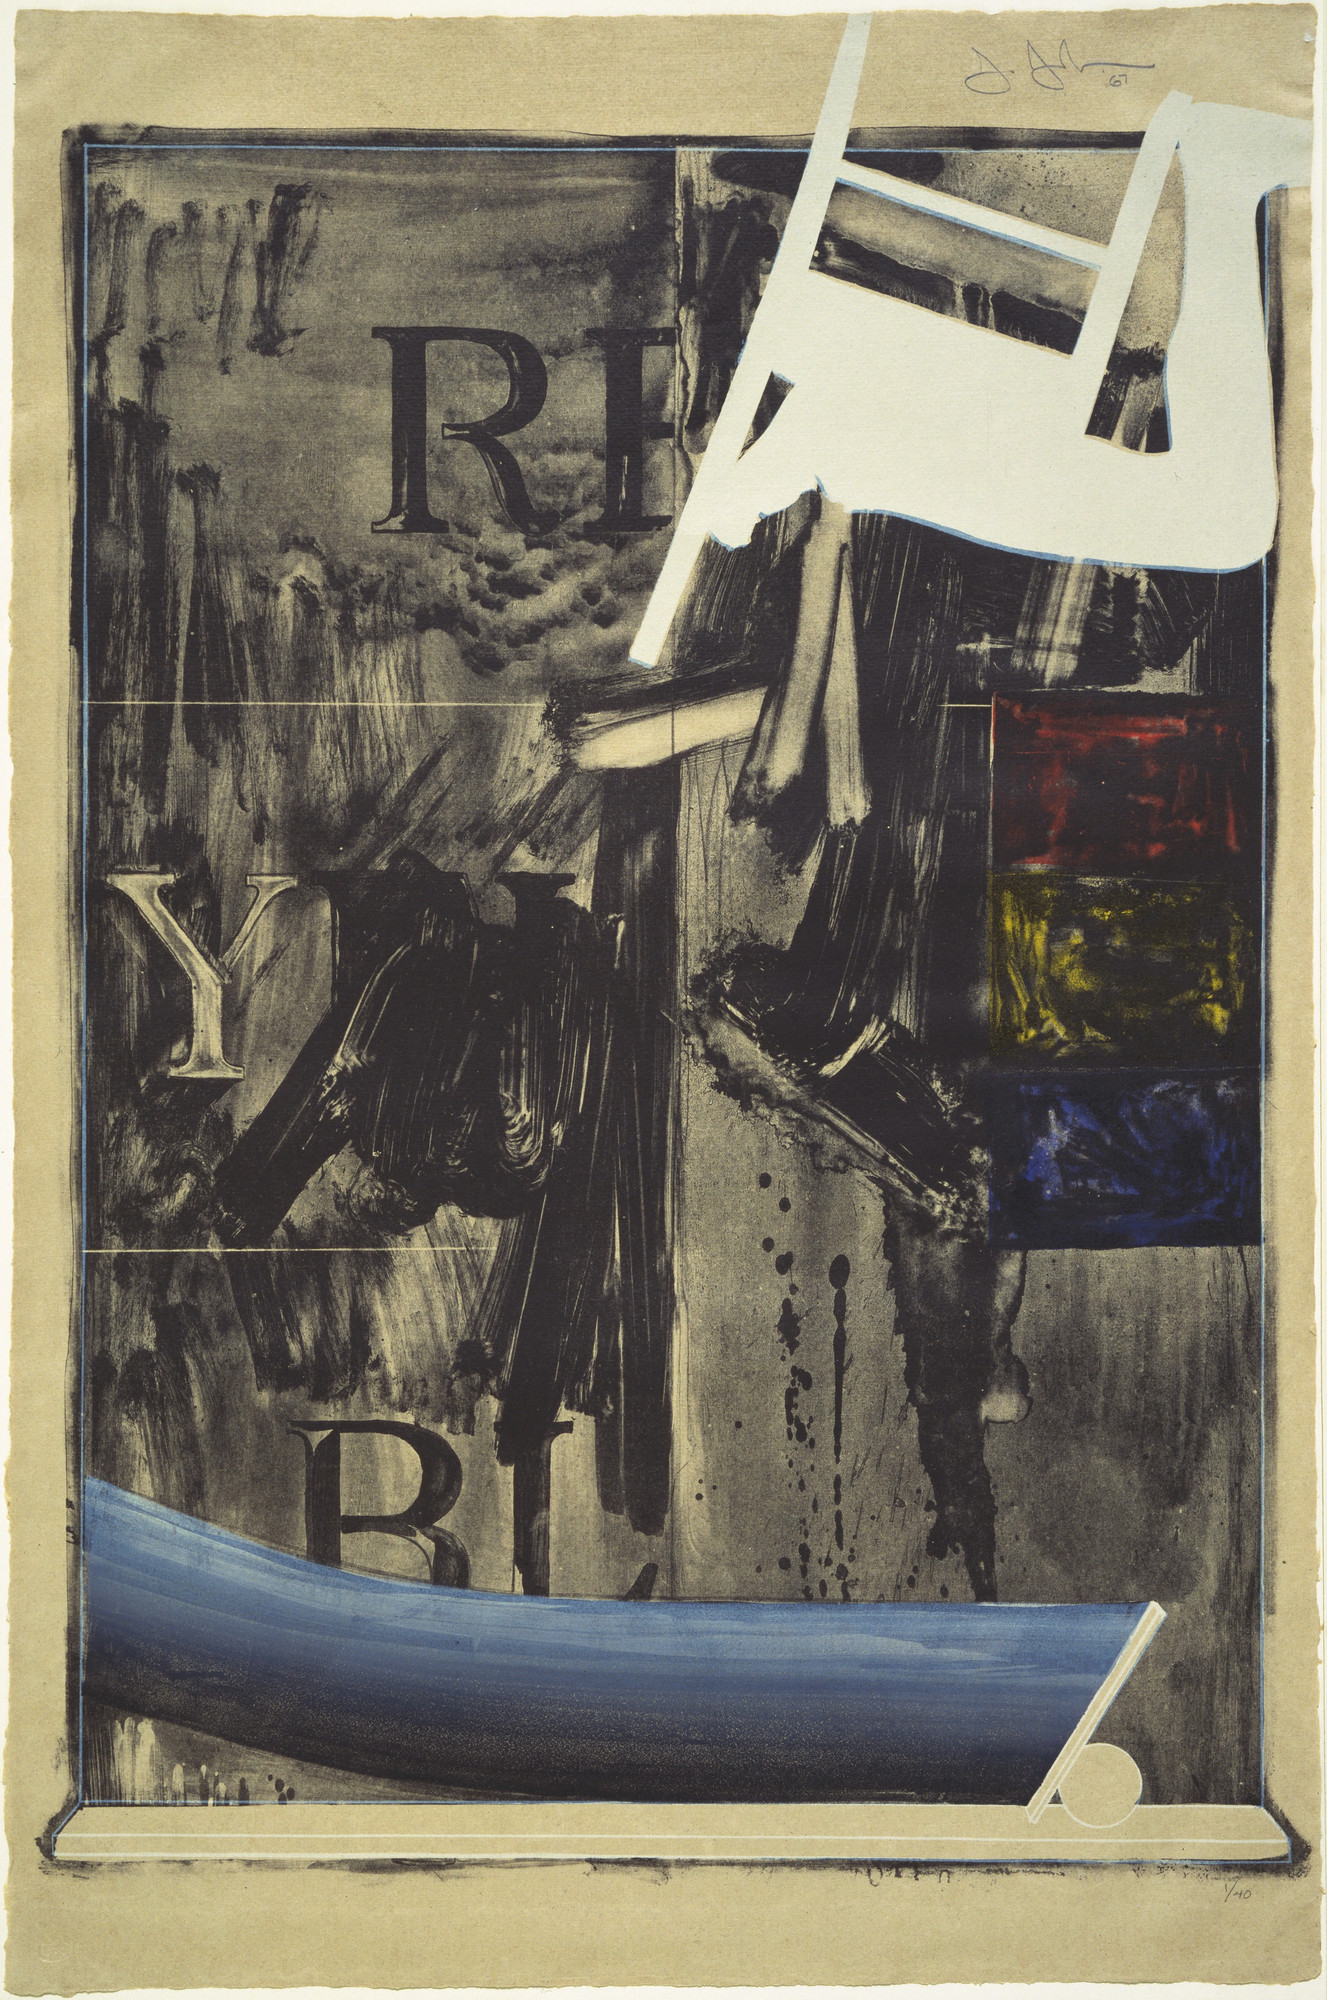 Jasper Johns. Watchman. 1967